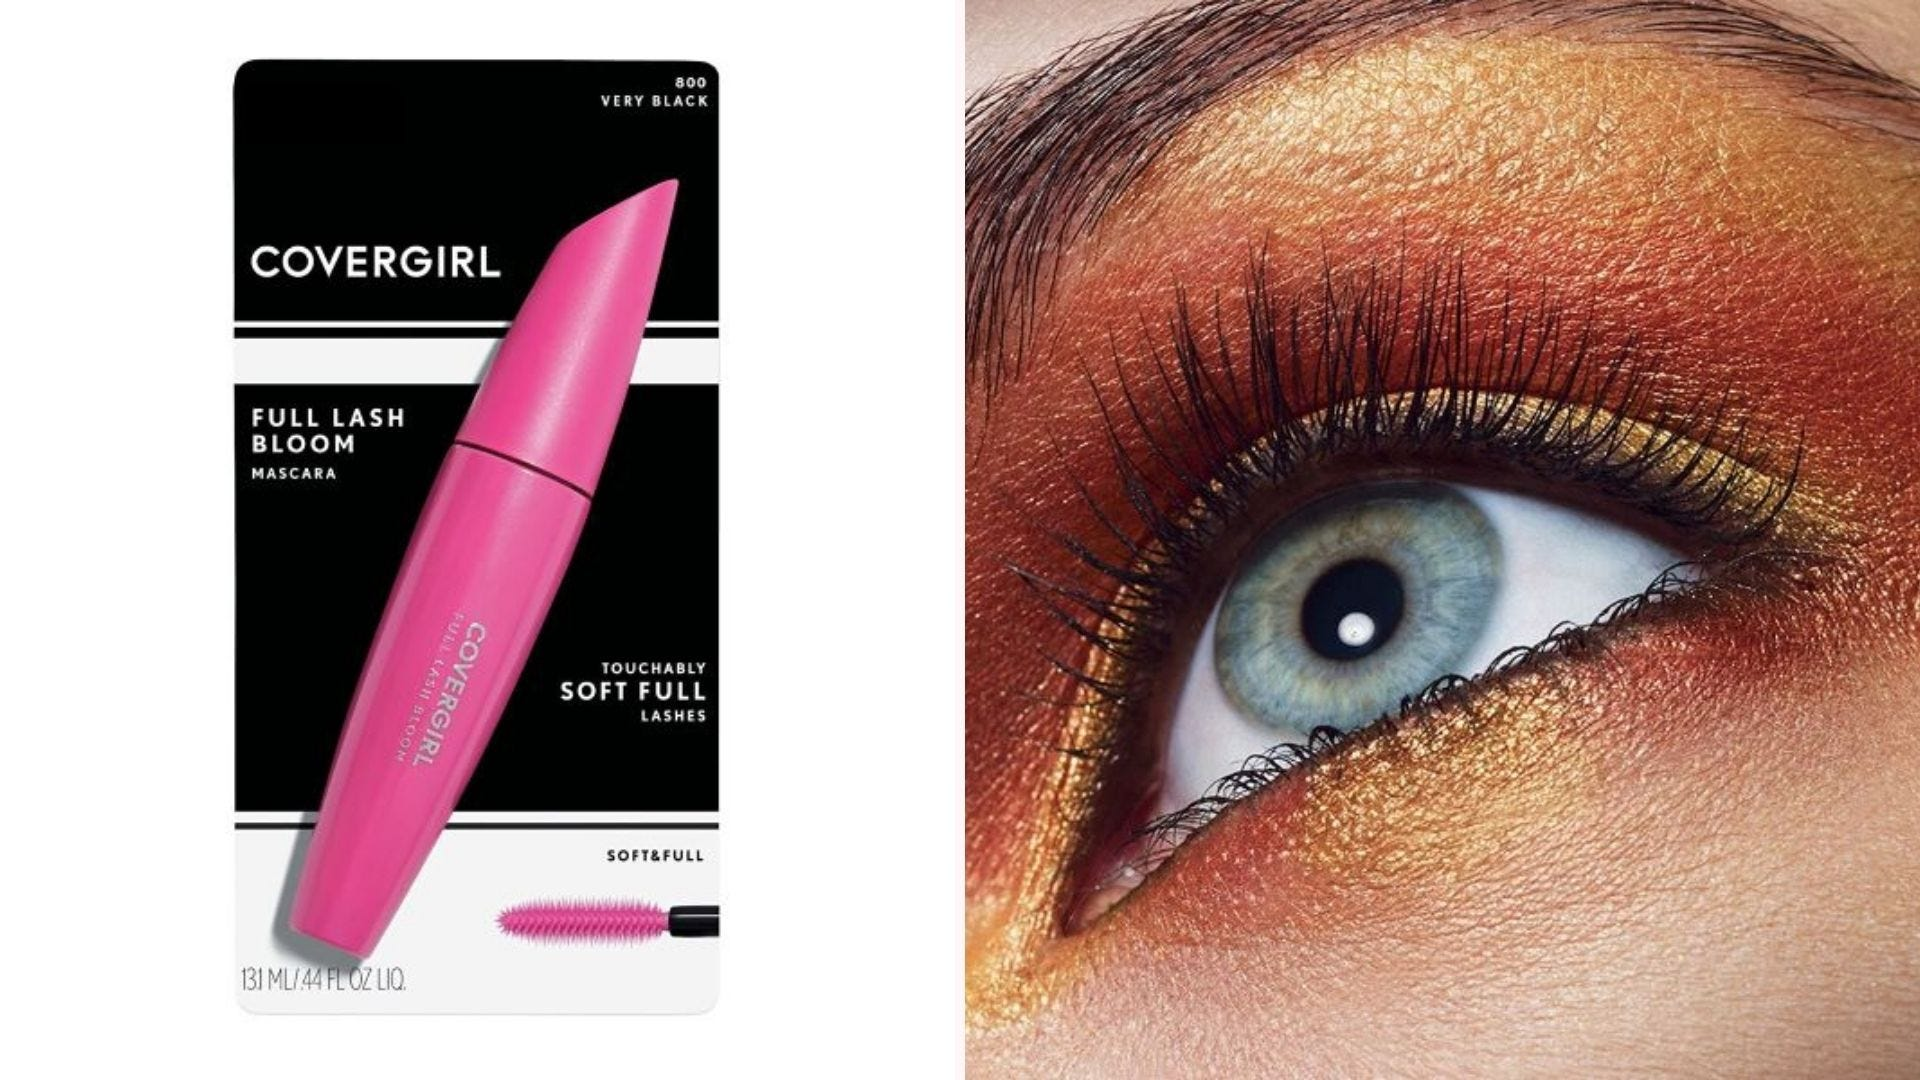 A tube of Covergirl Full Lash Bloom mascara and a woman's eye after applying it.